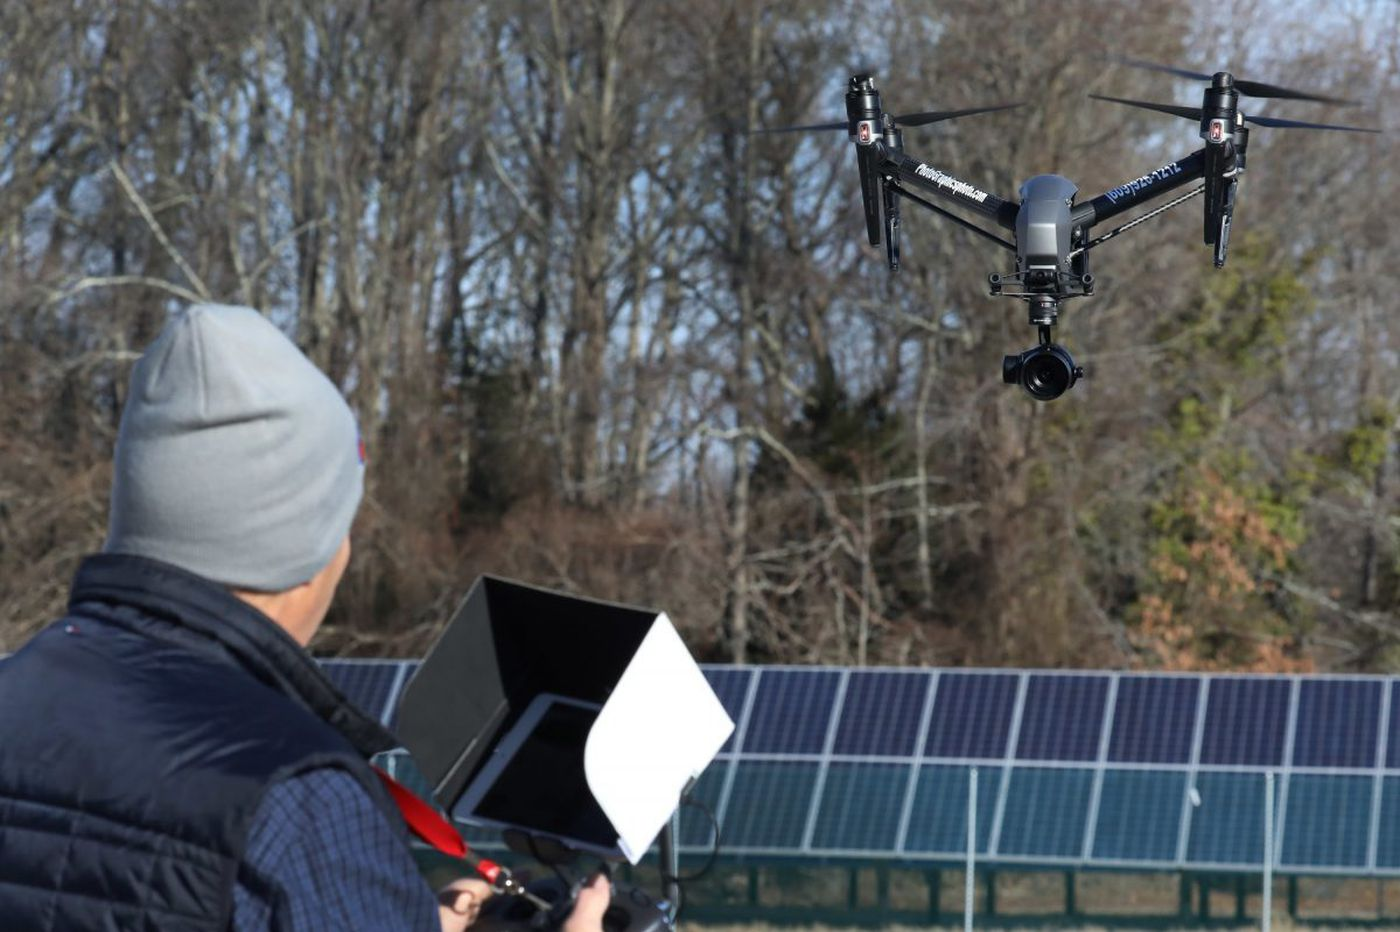 In New Jersey, new rules on flying drones